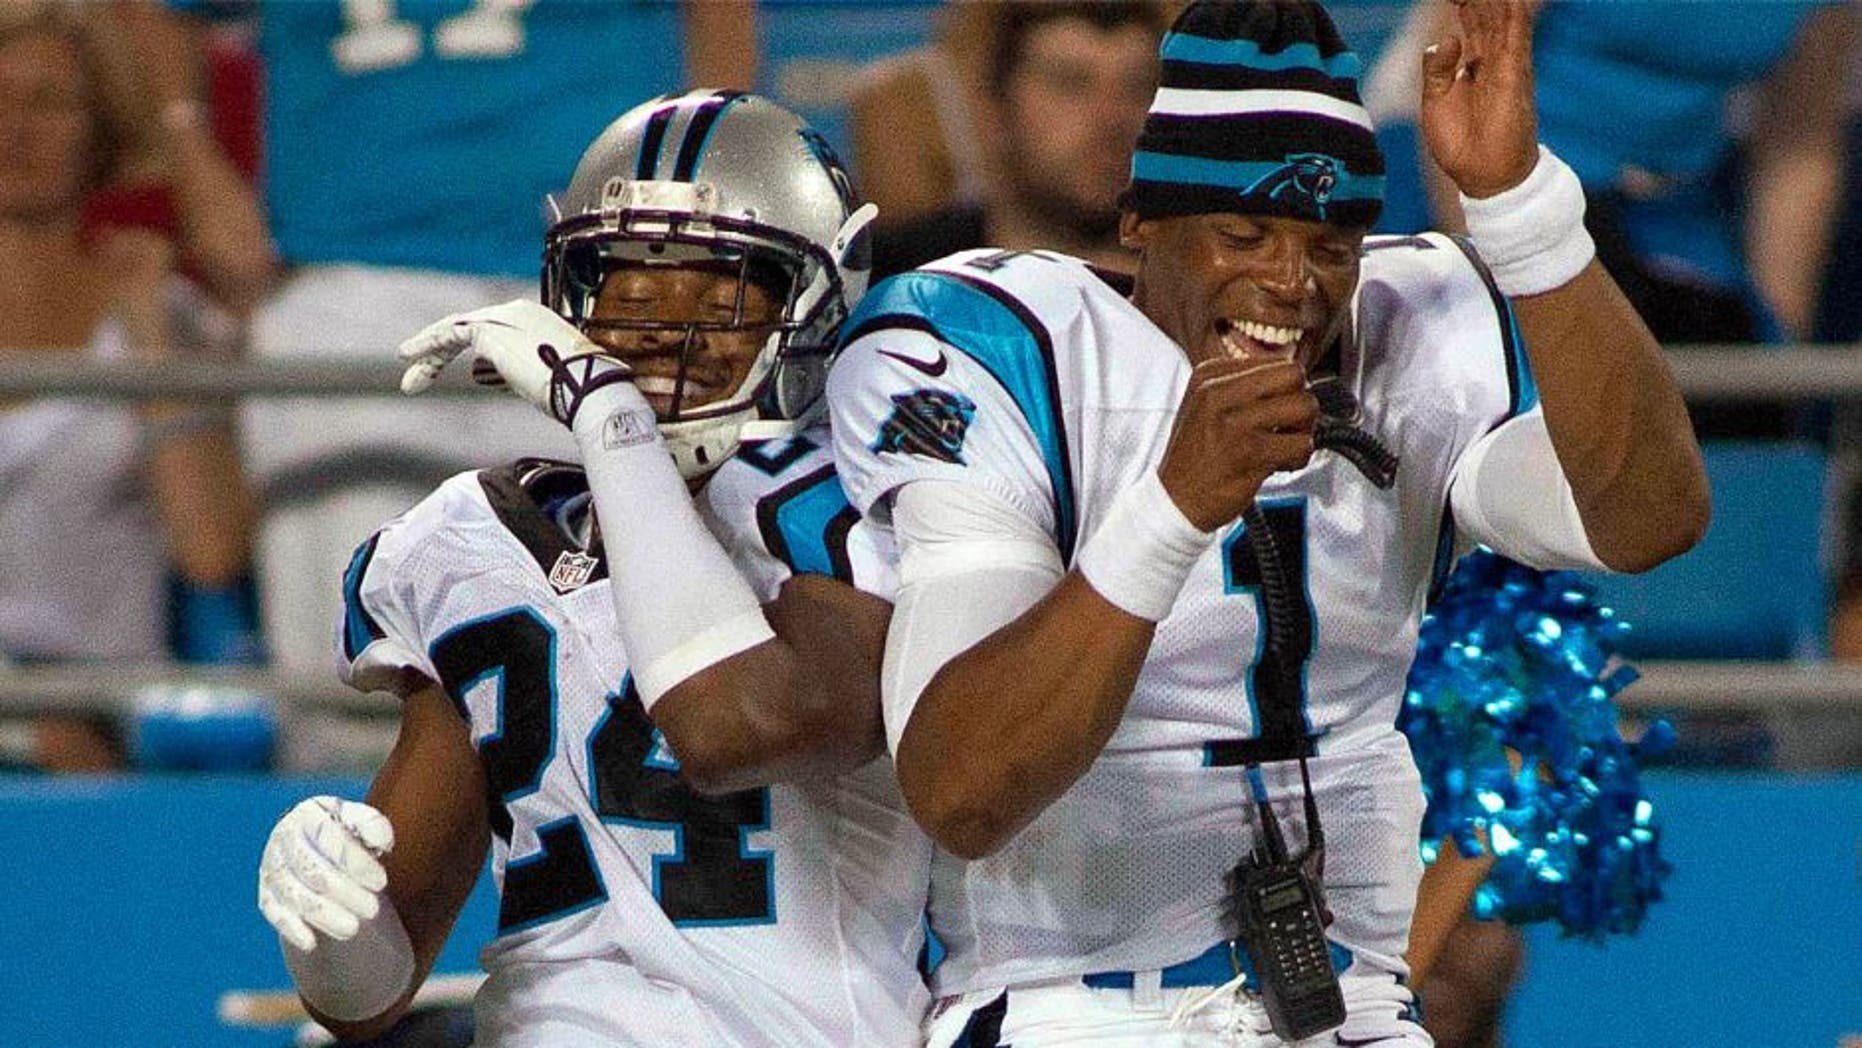 Aug 9, 2013; Charlotte, NC, USA; Carolina Panthers quarterback Cam Newton (1) celebrates with cornerback Josh Norman (24) after scoring a touchdown during the second half against the Chicago Bears. The Panthers defeated the Bears 24-17. Mandatory Credit: Jeremy Brevard-USA TODAY Sports